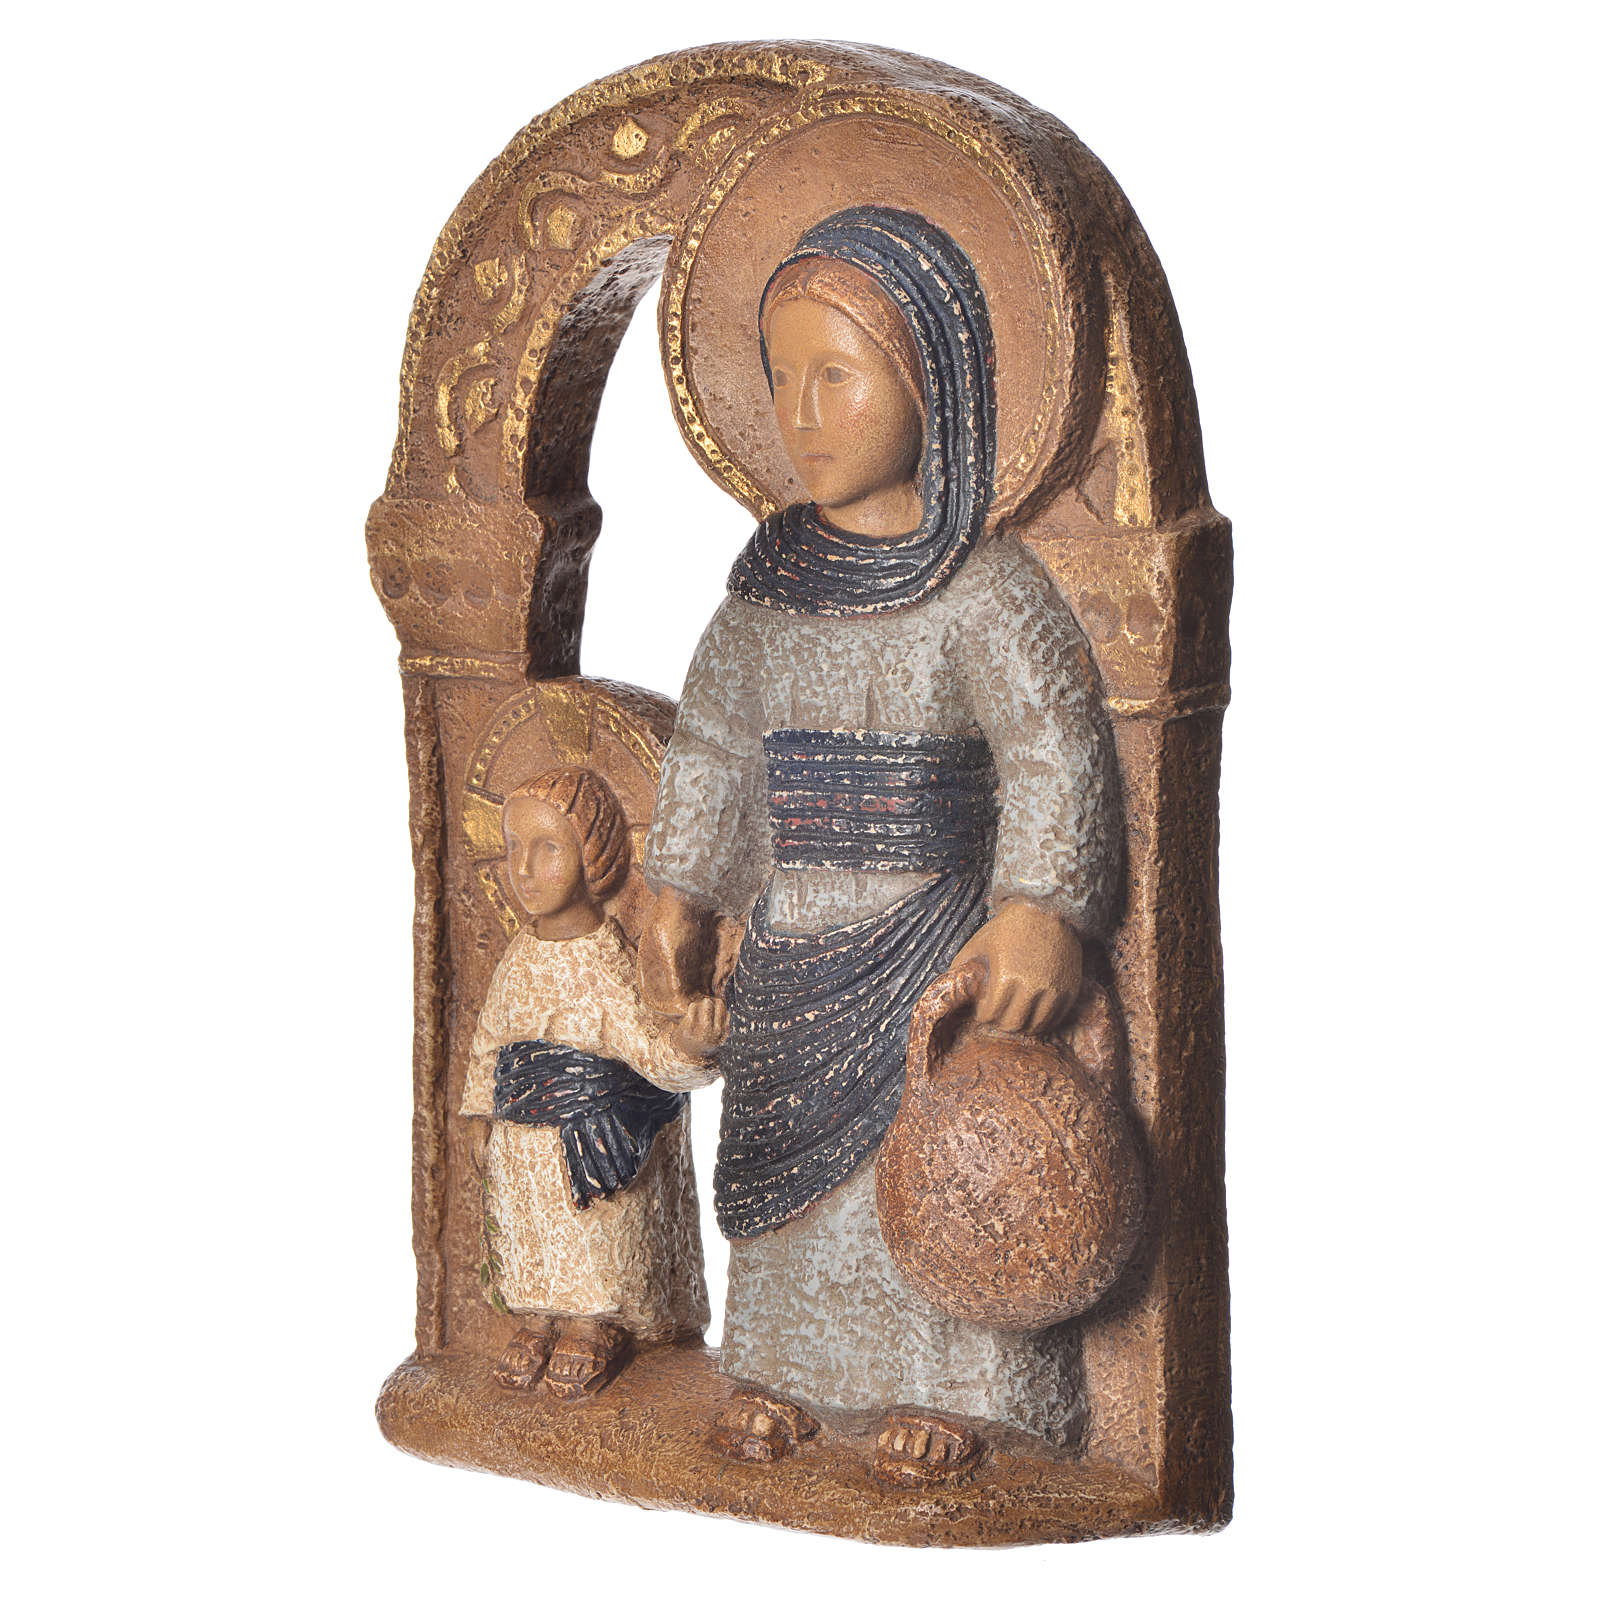 Virgin of Nazareth, blue mantle 35cm, Bethléem stone 4